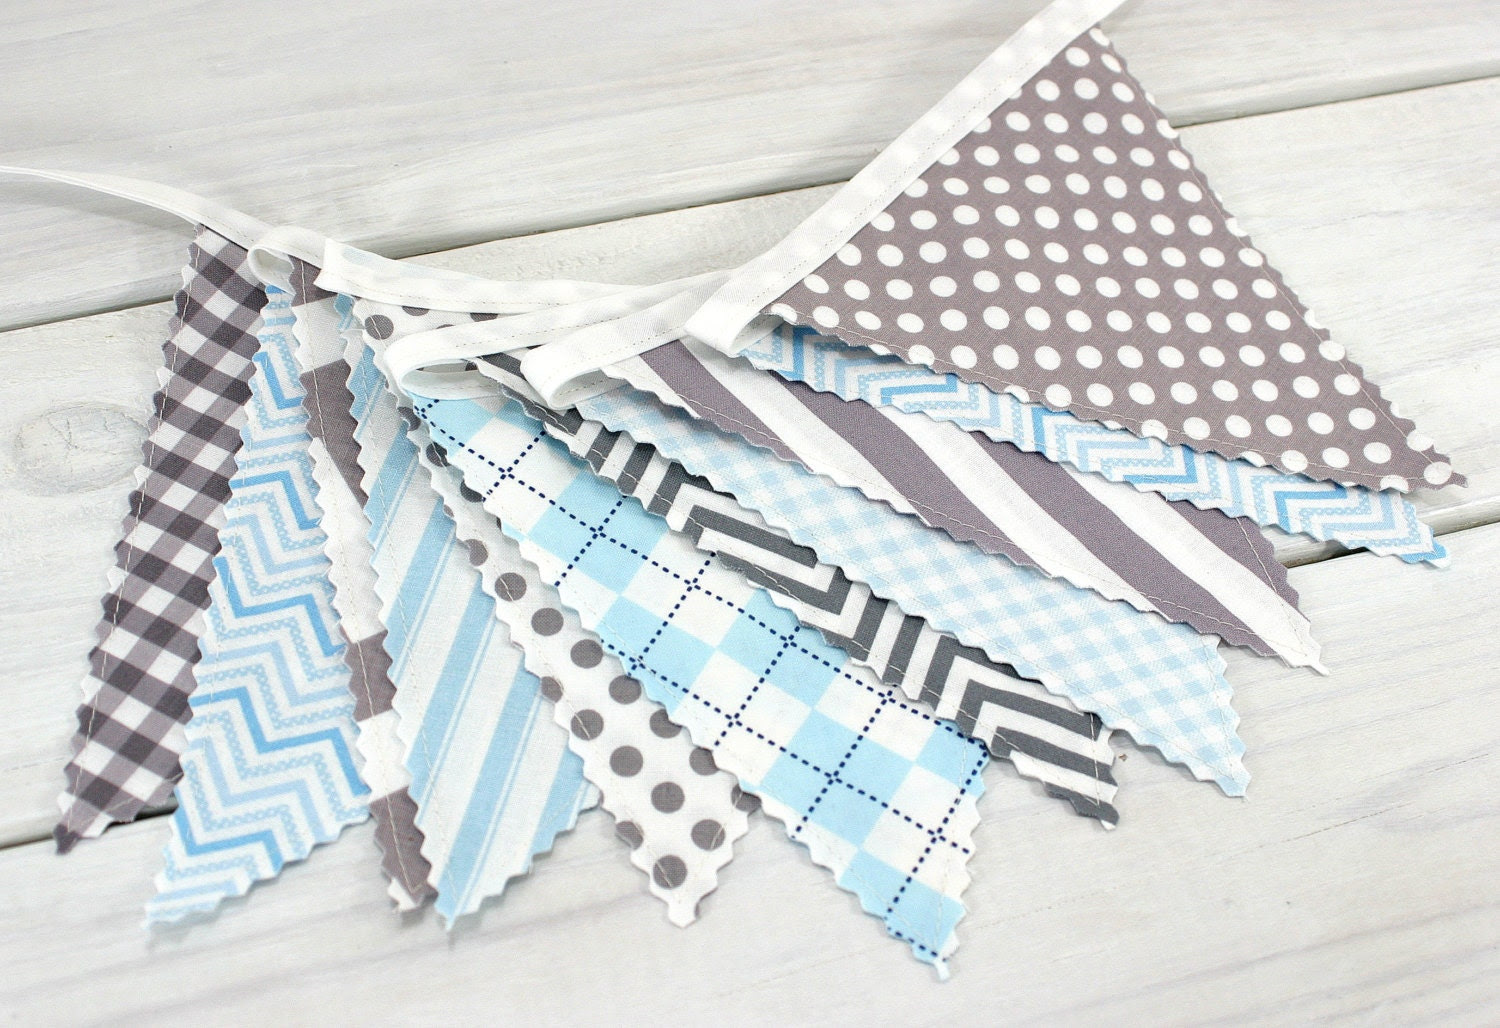 Bunting Fabric Banner, Fabric Flags, Boy Nursery Decor, Birthday Decoration - Baby Blue, Gray, Grey, Chevron, Dots, Argyle - Ready to Ship - thespottedbarn